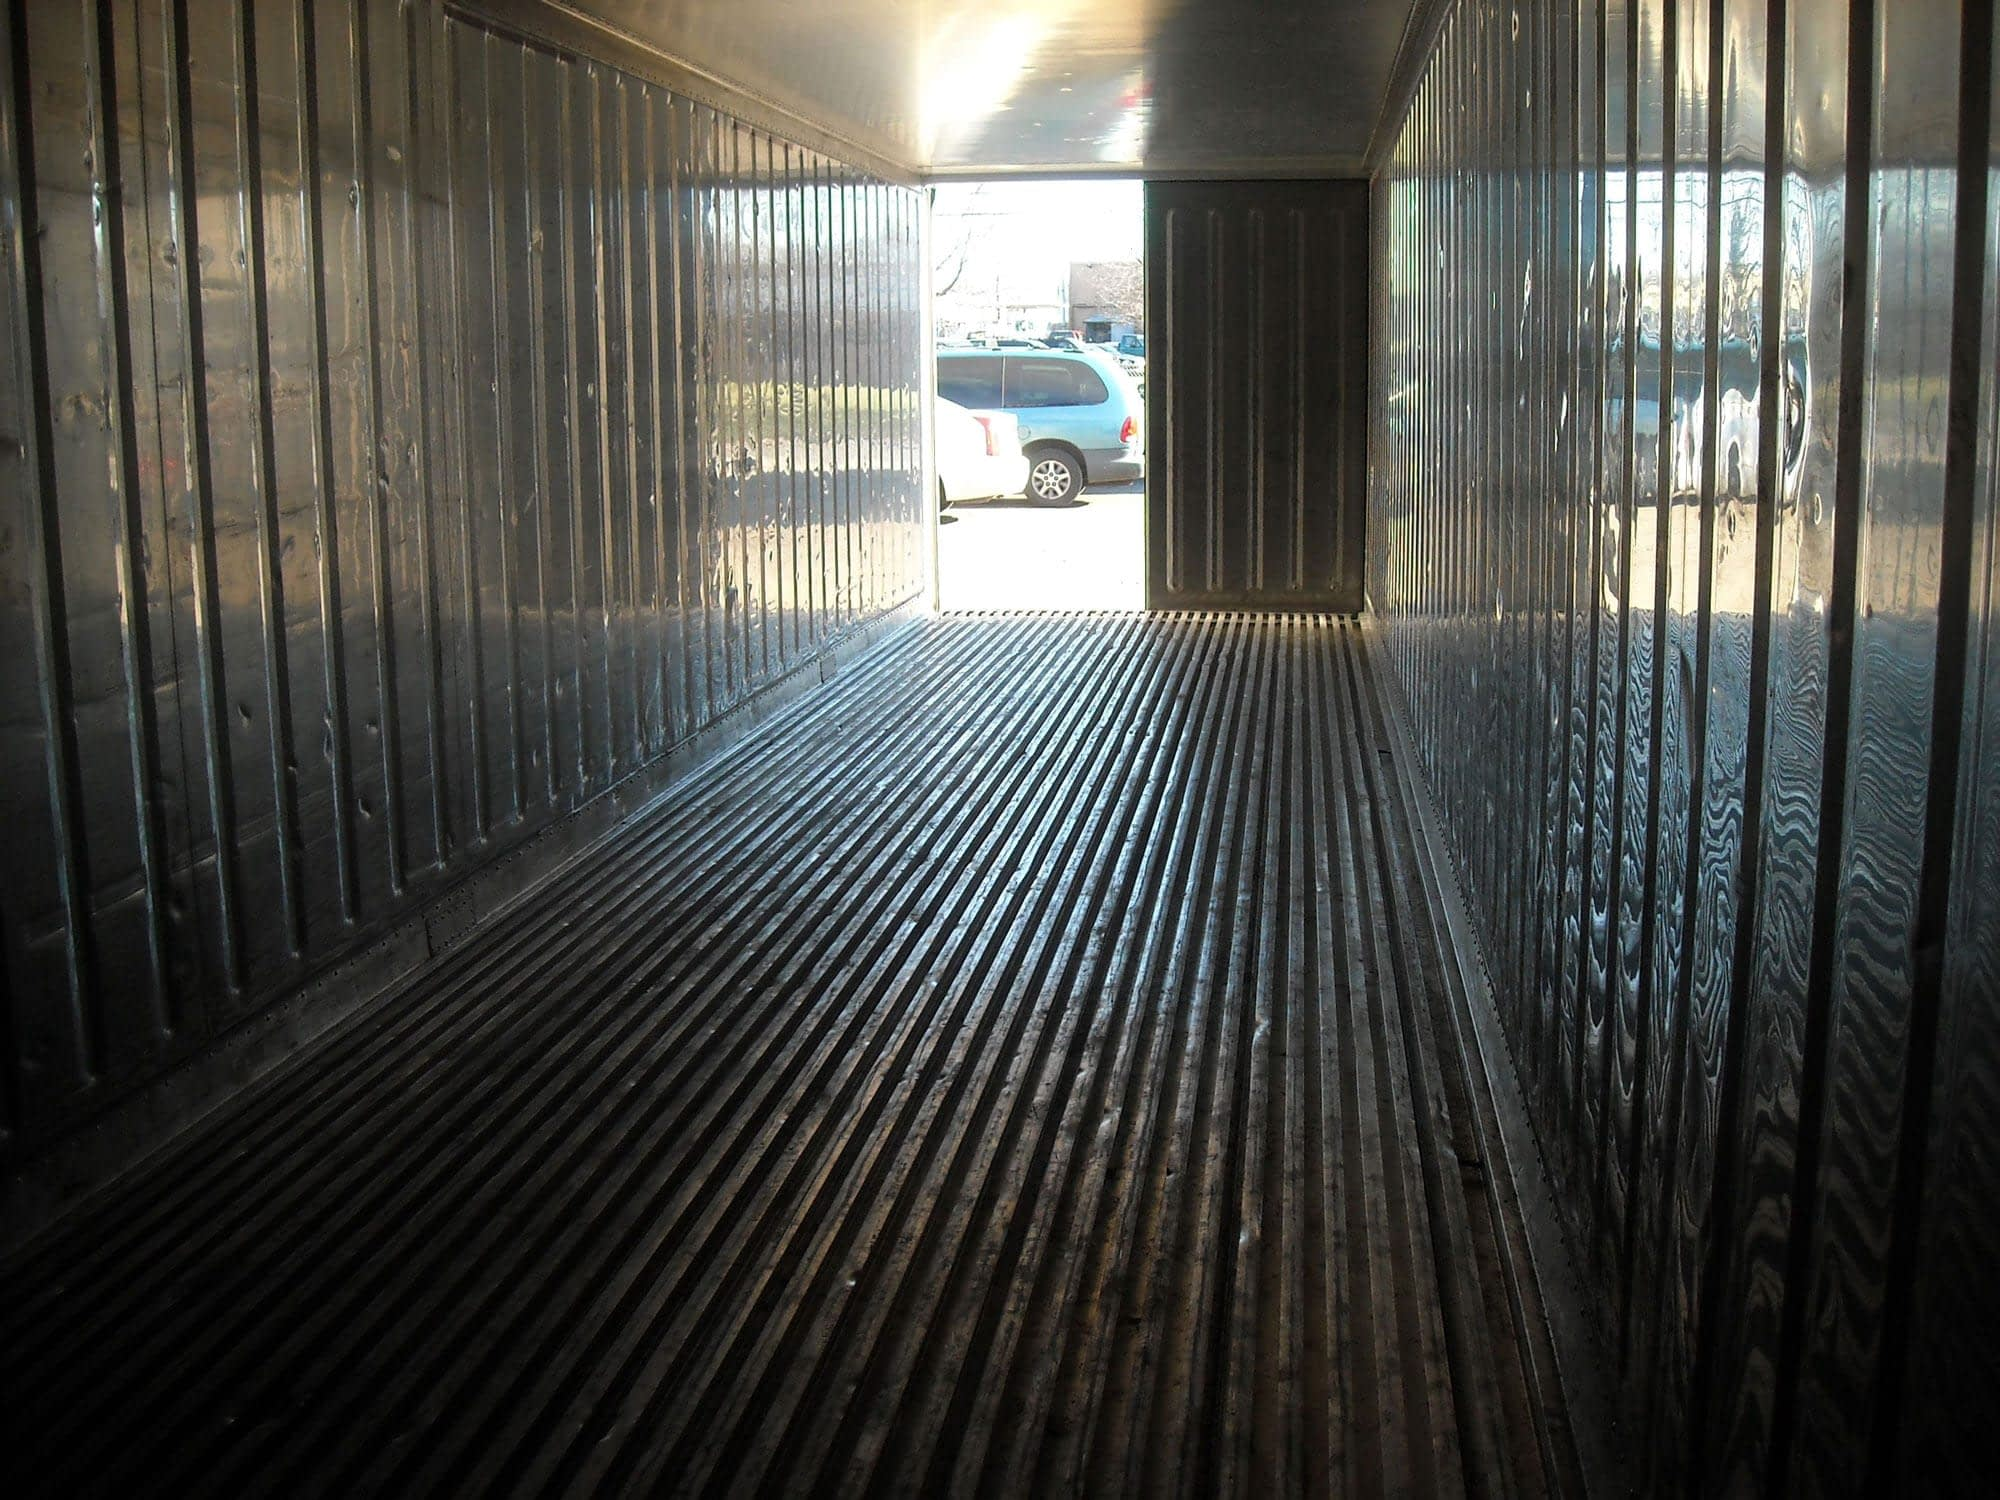 TRS ISO refrigeration containers have aluminum floors for air circulation